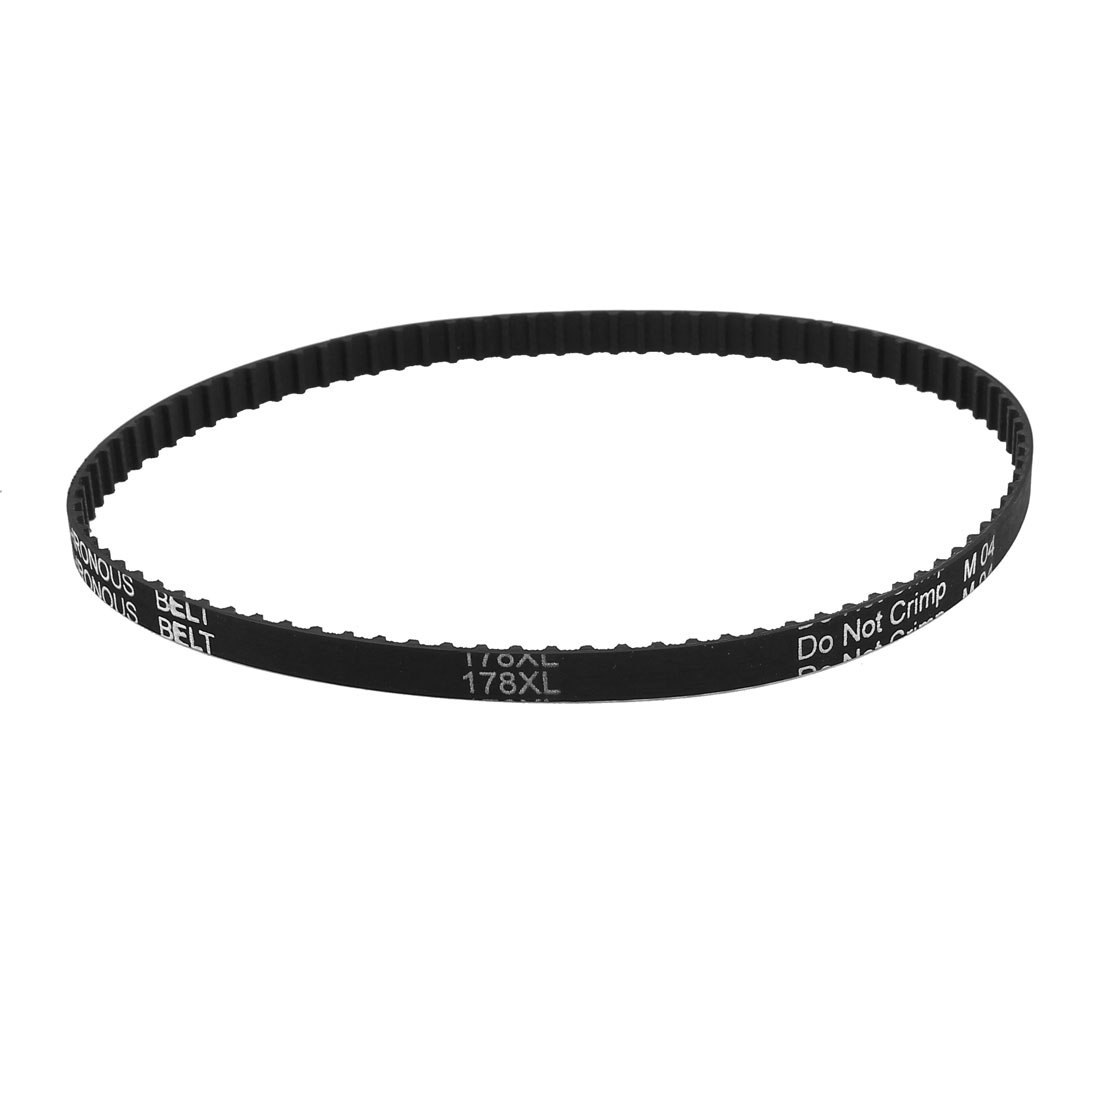 Dishwasher Speed Control Drive Rubber Timing Belt 89 Teeth 7.9mm Wide 178XL 031